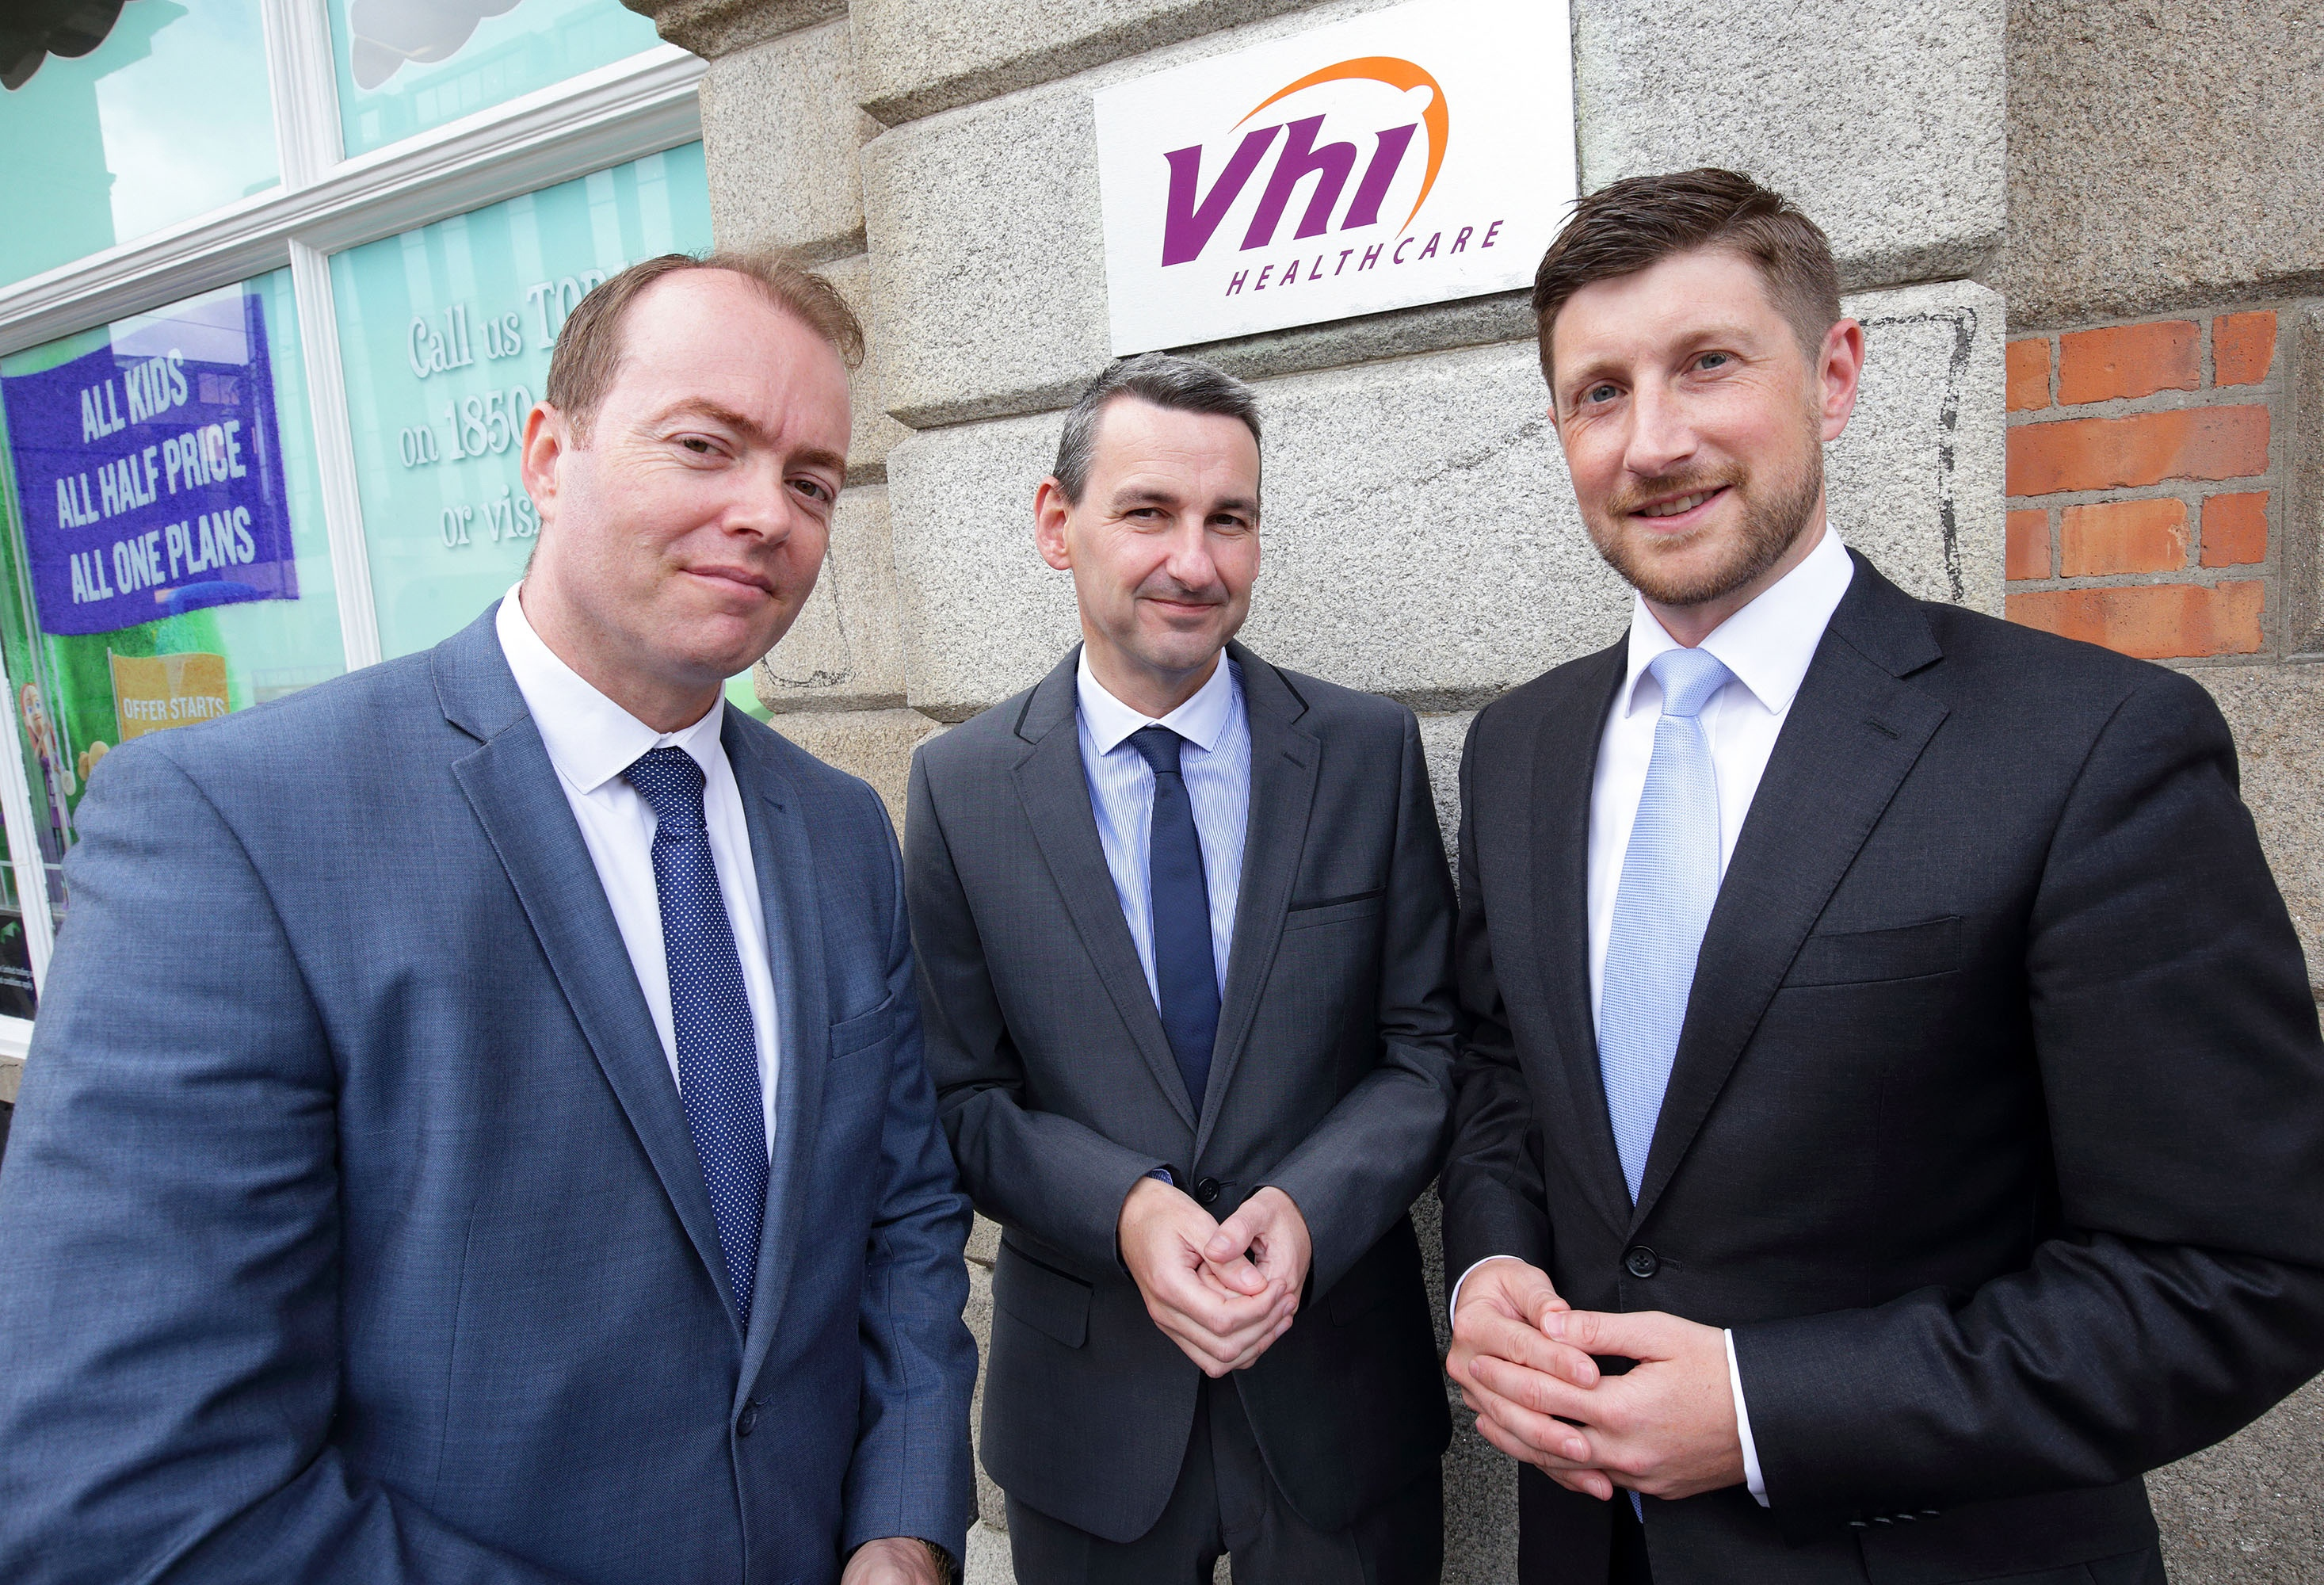 VHI Group (Insurance)